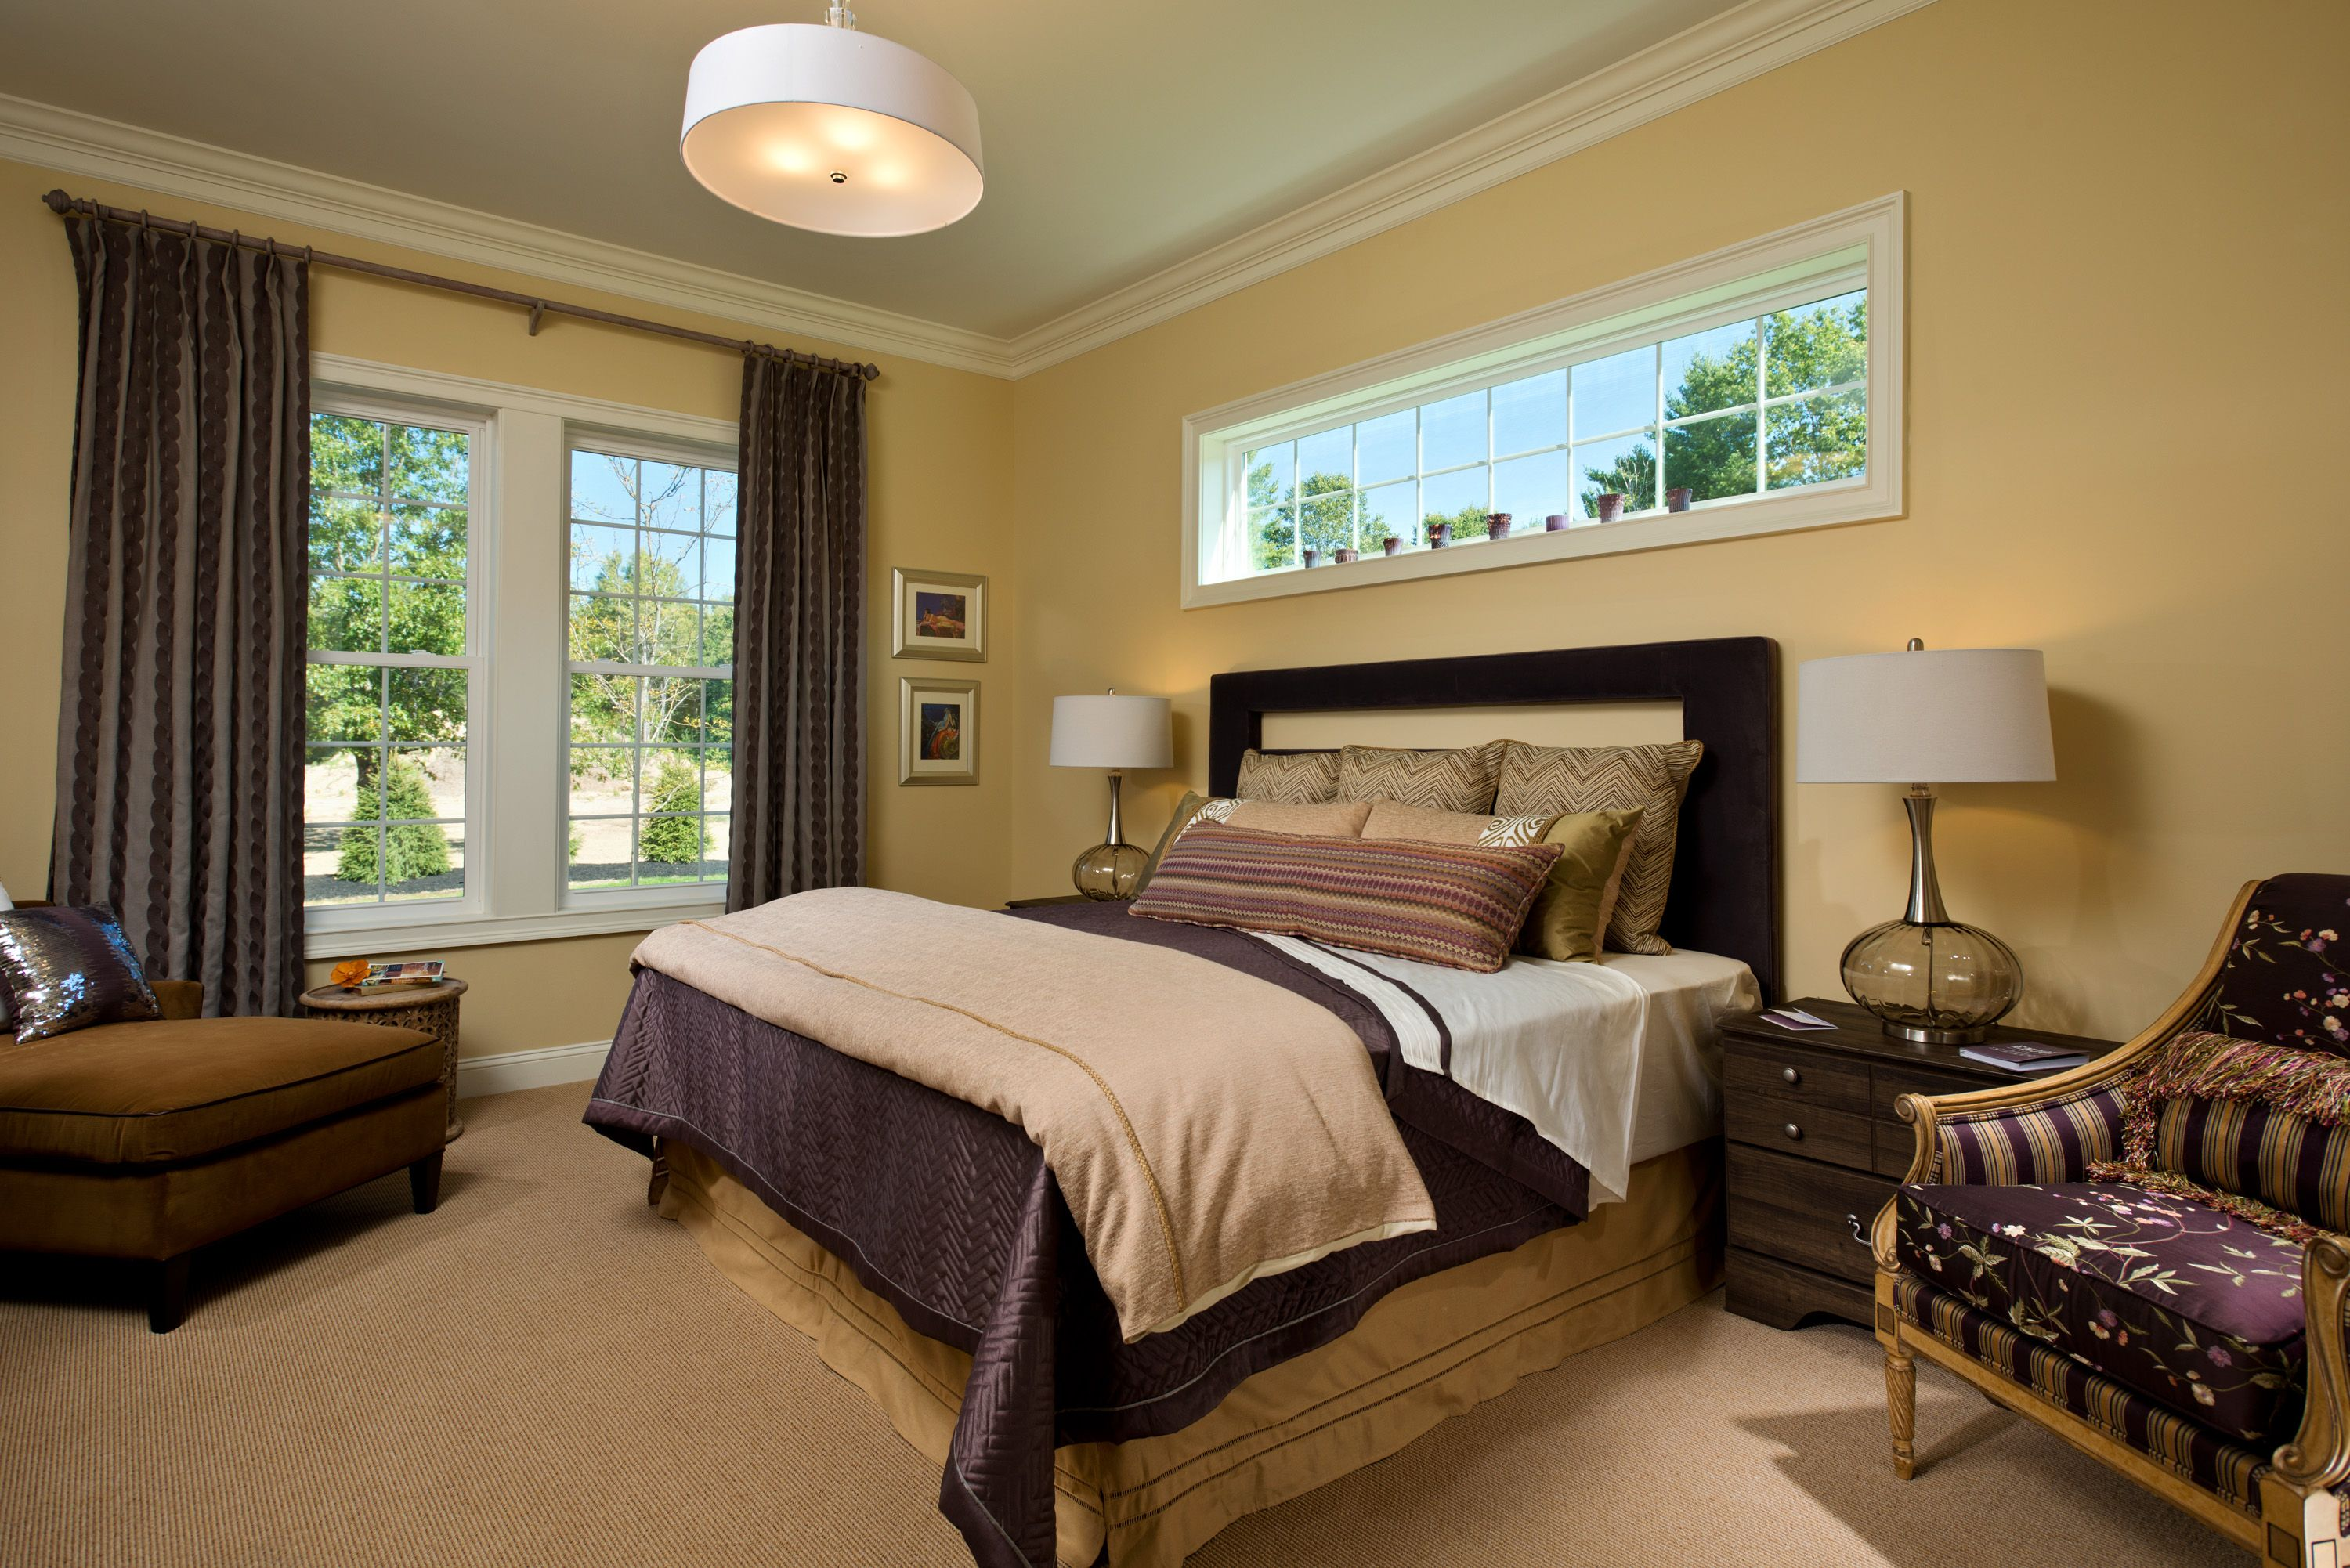 Bedroom featured in the Newlin II By Belmonte Builders in Albany-Saratoga, NY